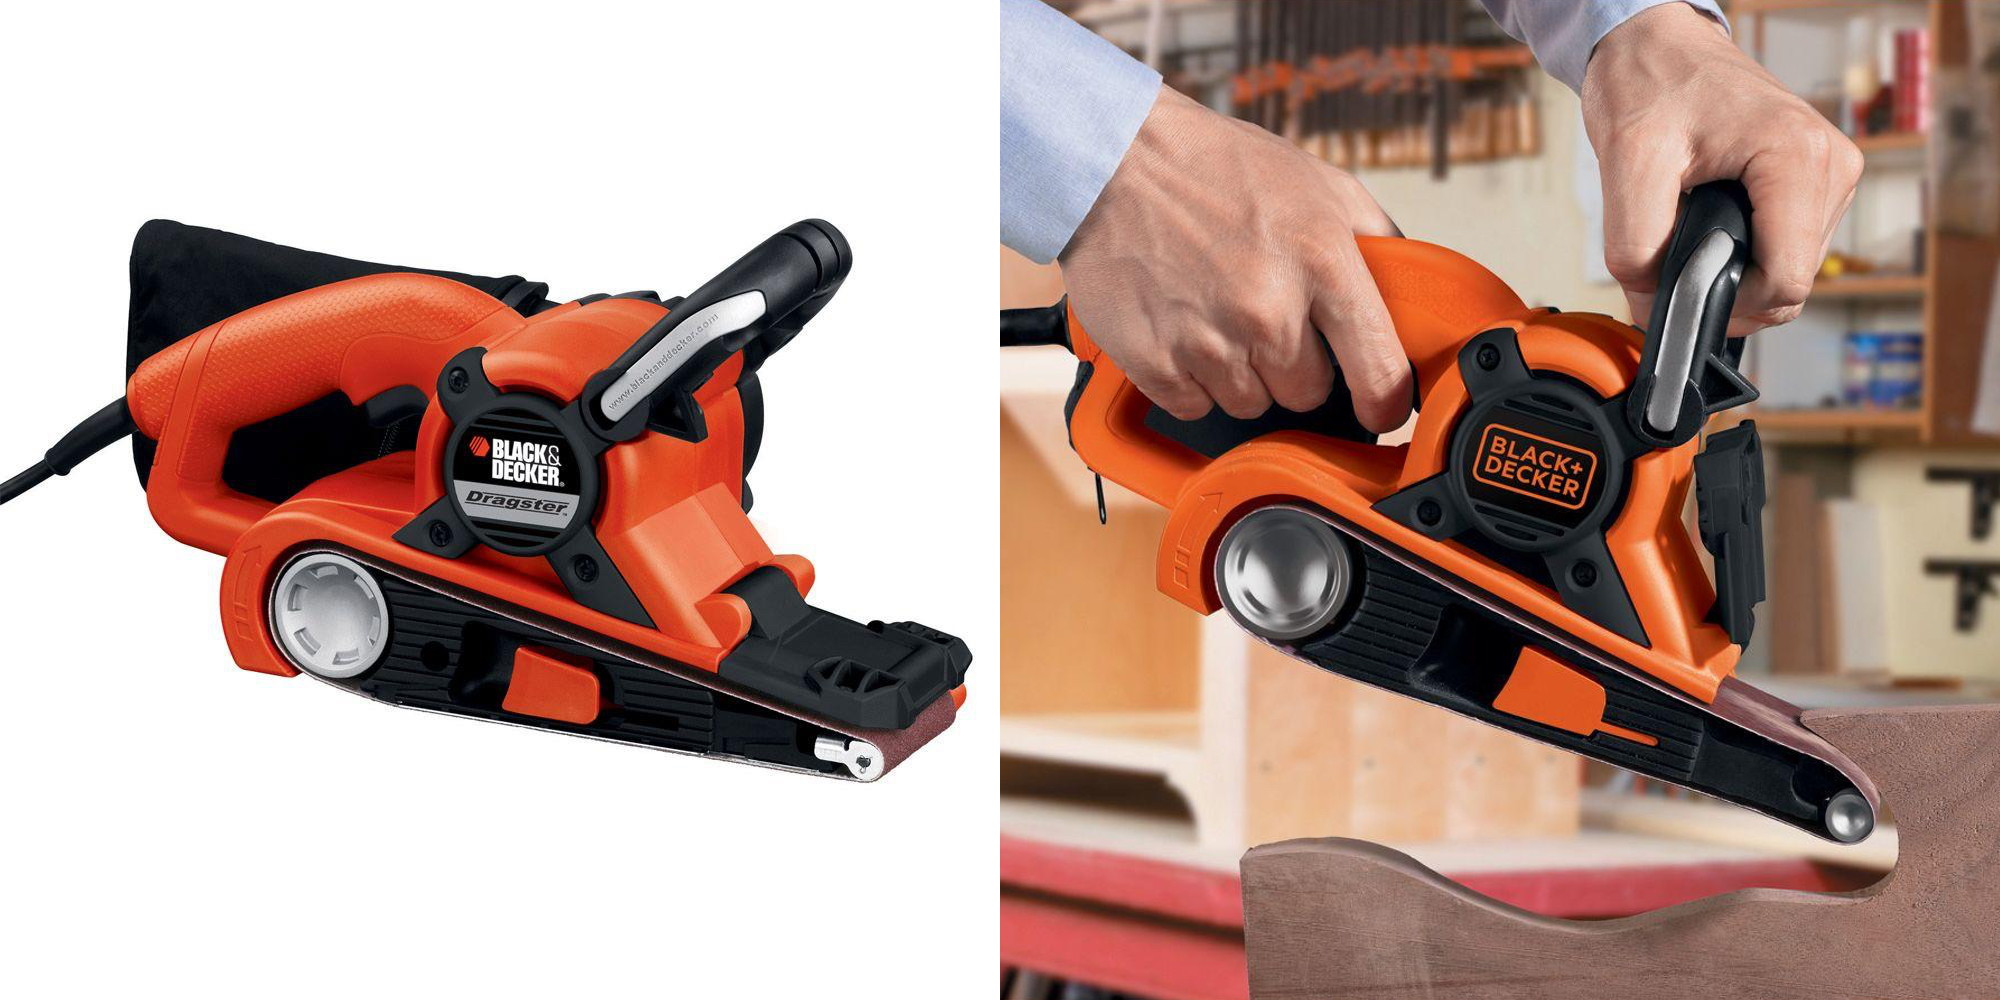 BLACK+DECKER's Dragster 21-inch Belt Sander drops to new Amazon low at $30 (Reg. $45)